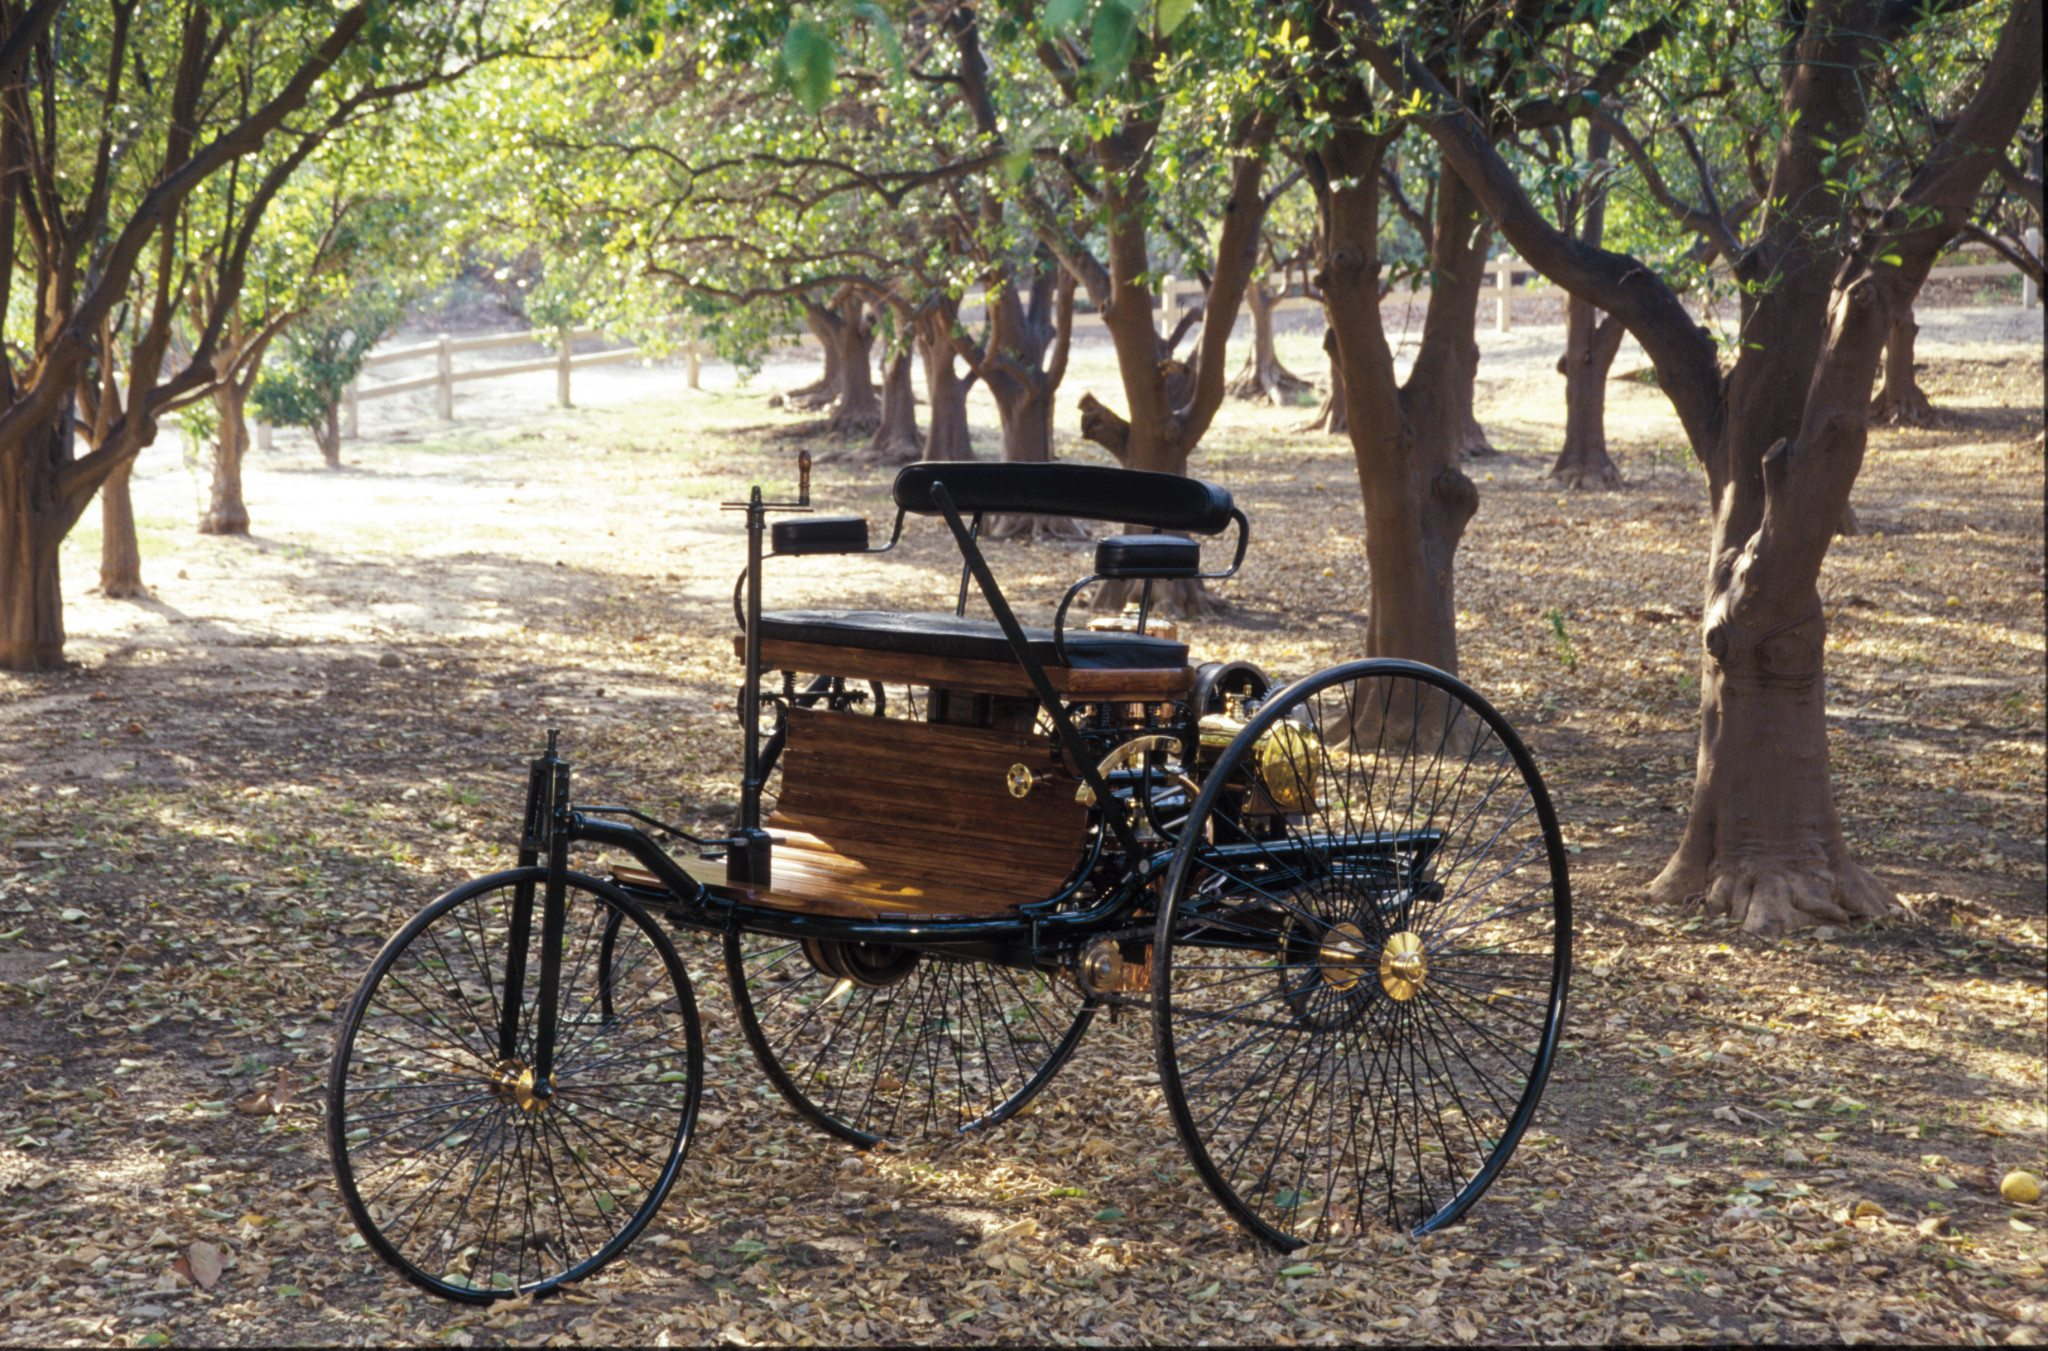 1886 Benz Patent Motorwagen Birth Of The Motorcar Heacock First Combustion Engine Diagram A Motorized Three Wheeler Identical To This One Claimed Right Be Called Example Pictured Is Handful Reproductions